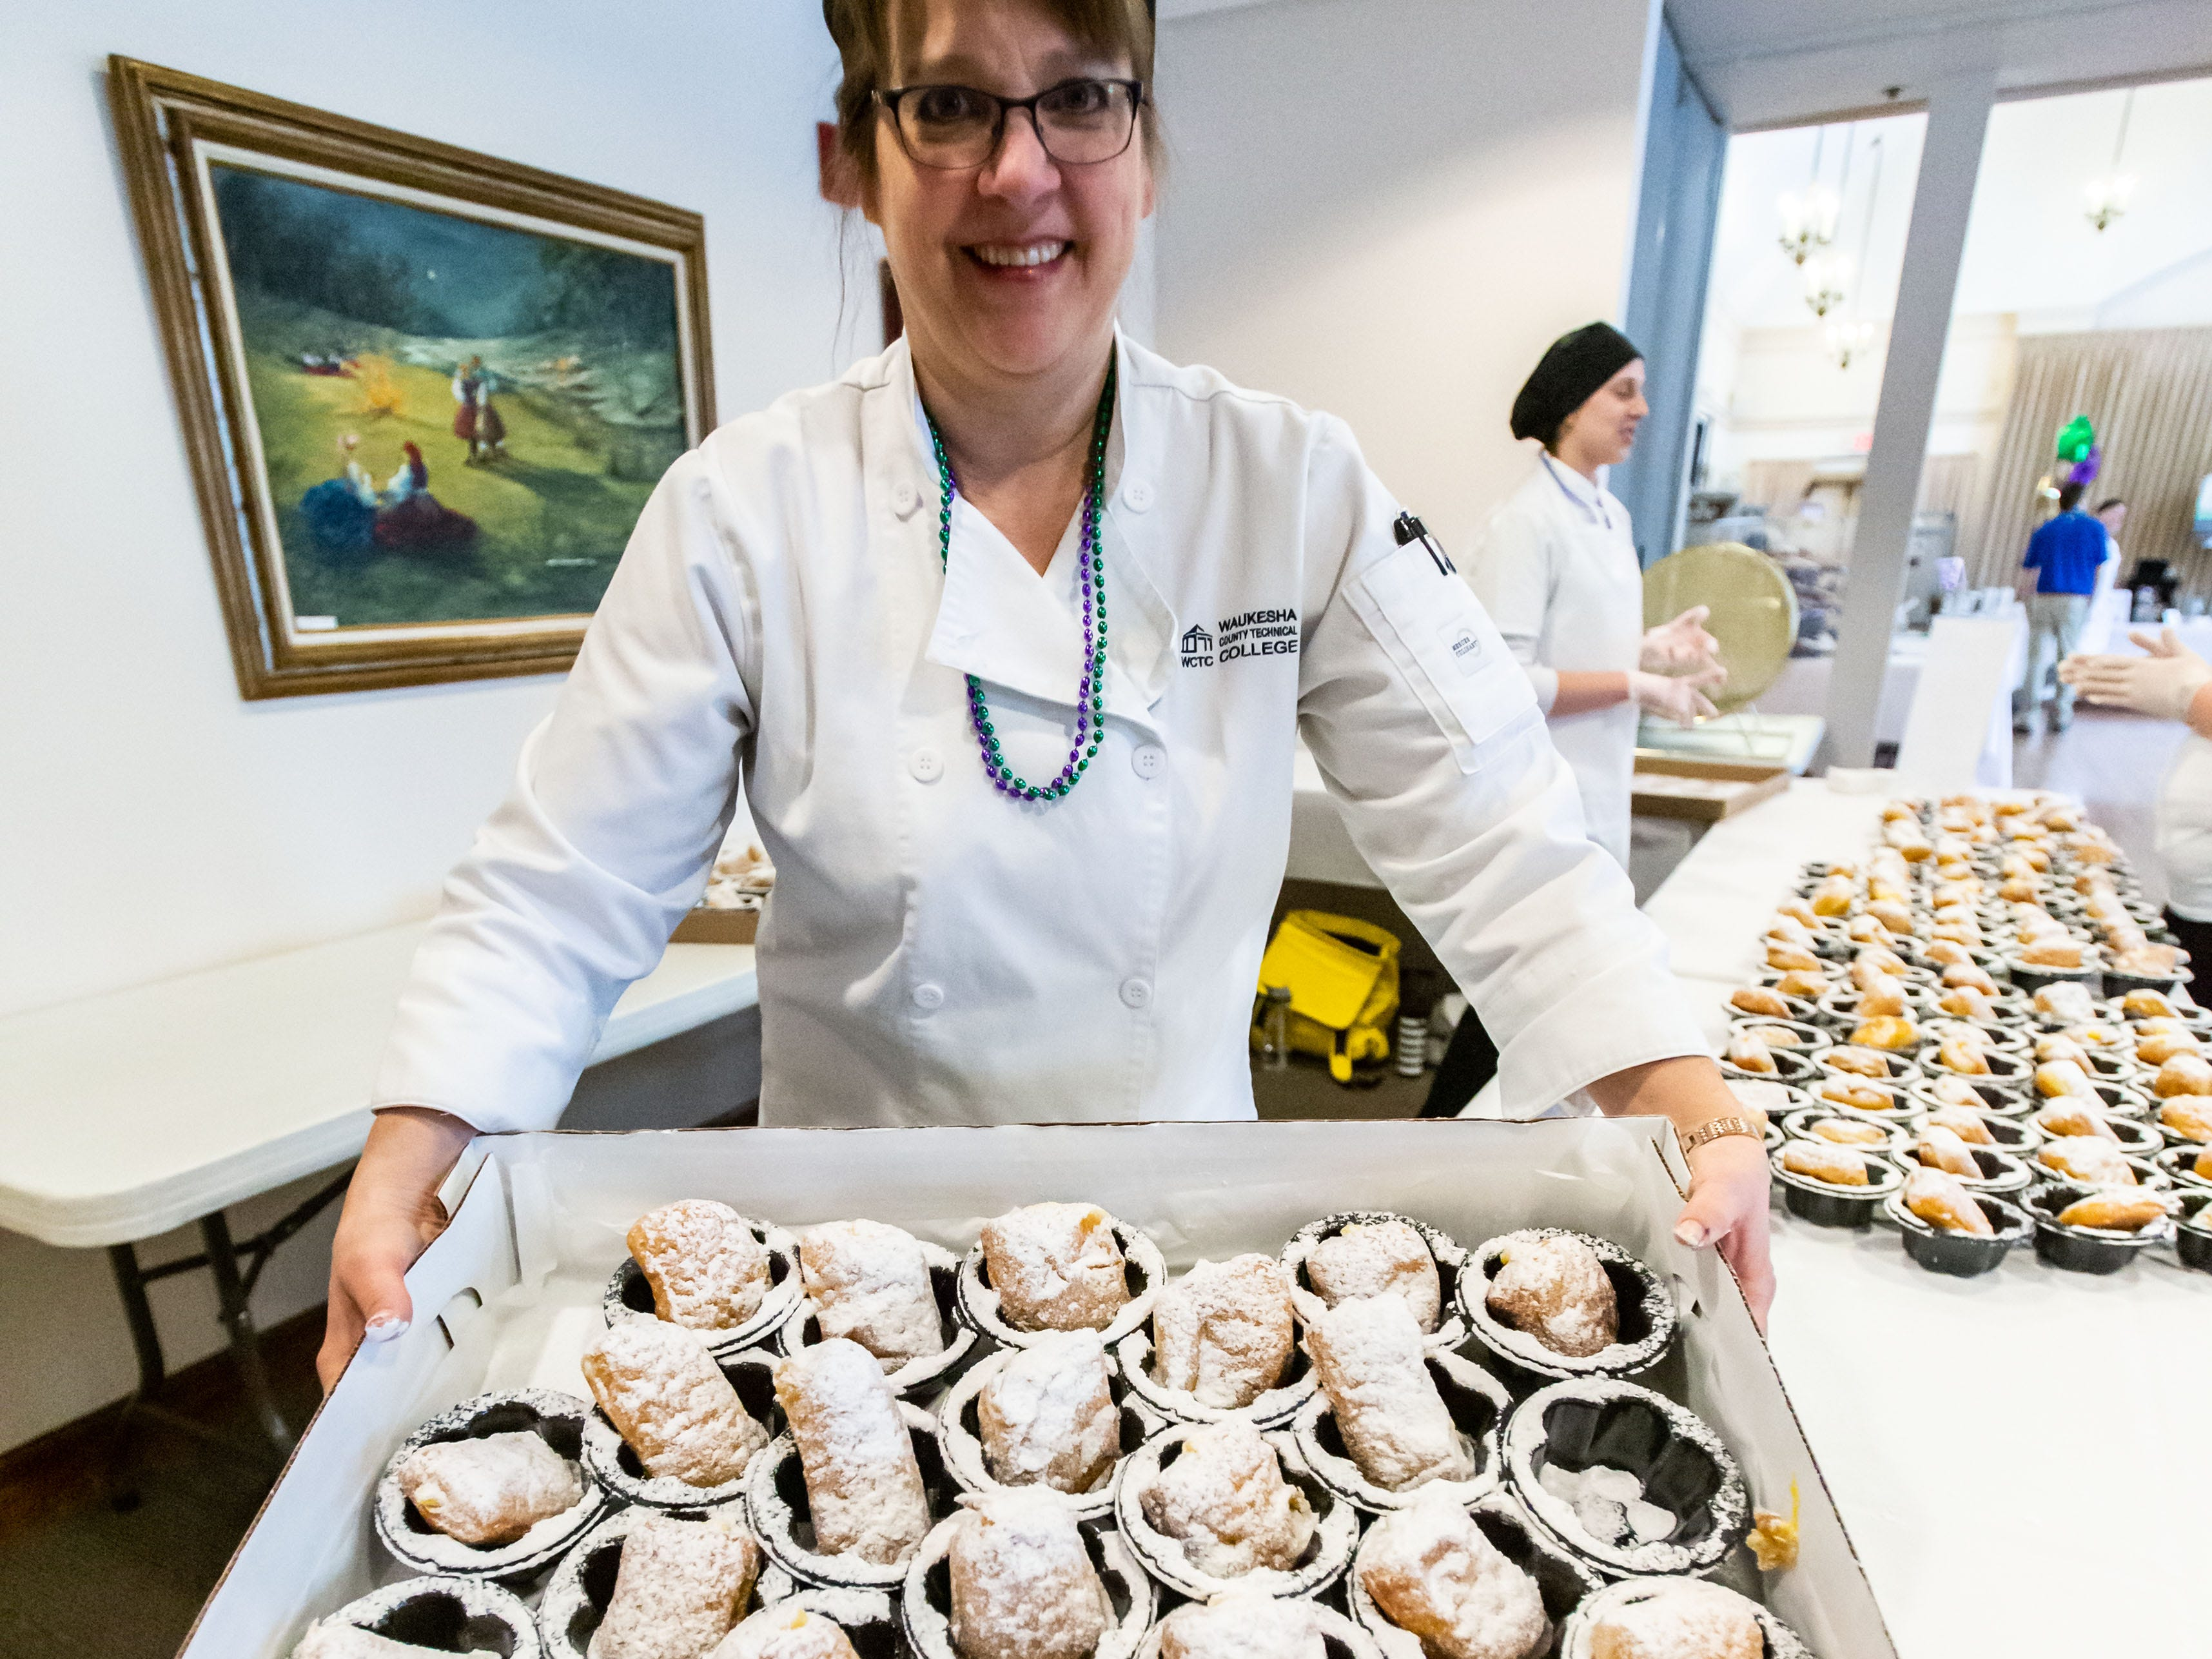 Mona Gramberg of Neat-O's Bake Shoppe unloads a fresh tray of paczki during the Wisconsin Bakers Association's Paczki Preview Party at the Polish Center of Wisconsin in Franklin on Sunday, Feb. 24, 2019. The event, which showcases some of the best paczki from the area, also features live music, a special guest appearance by Little Miss Polish Fest and more.